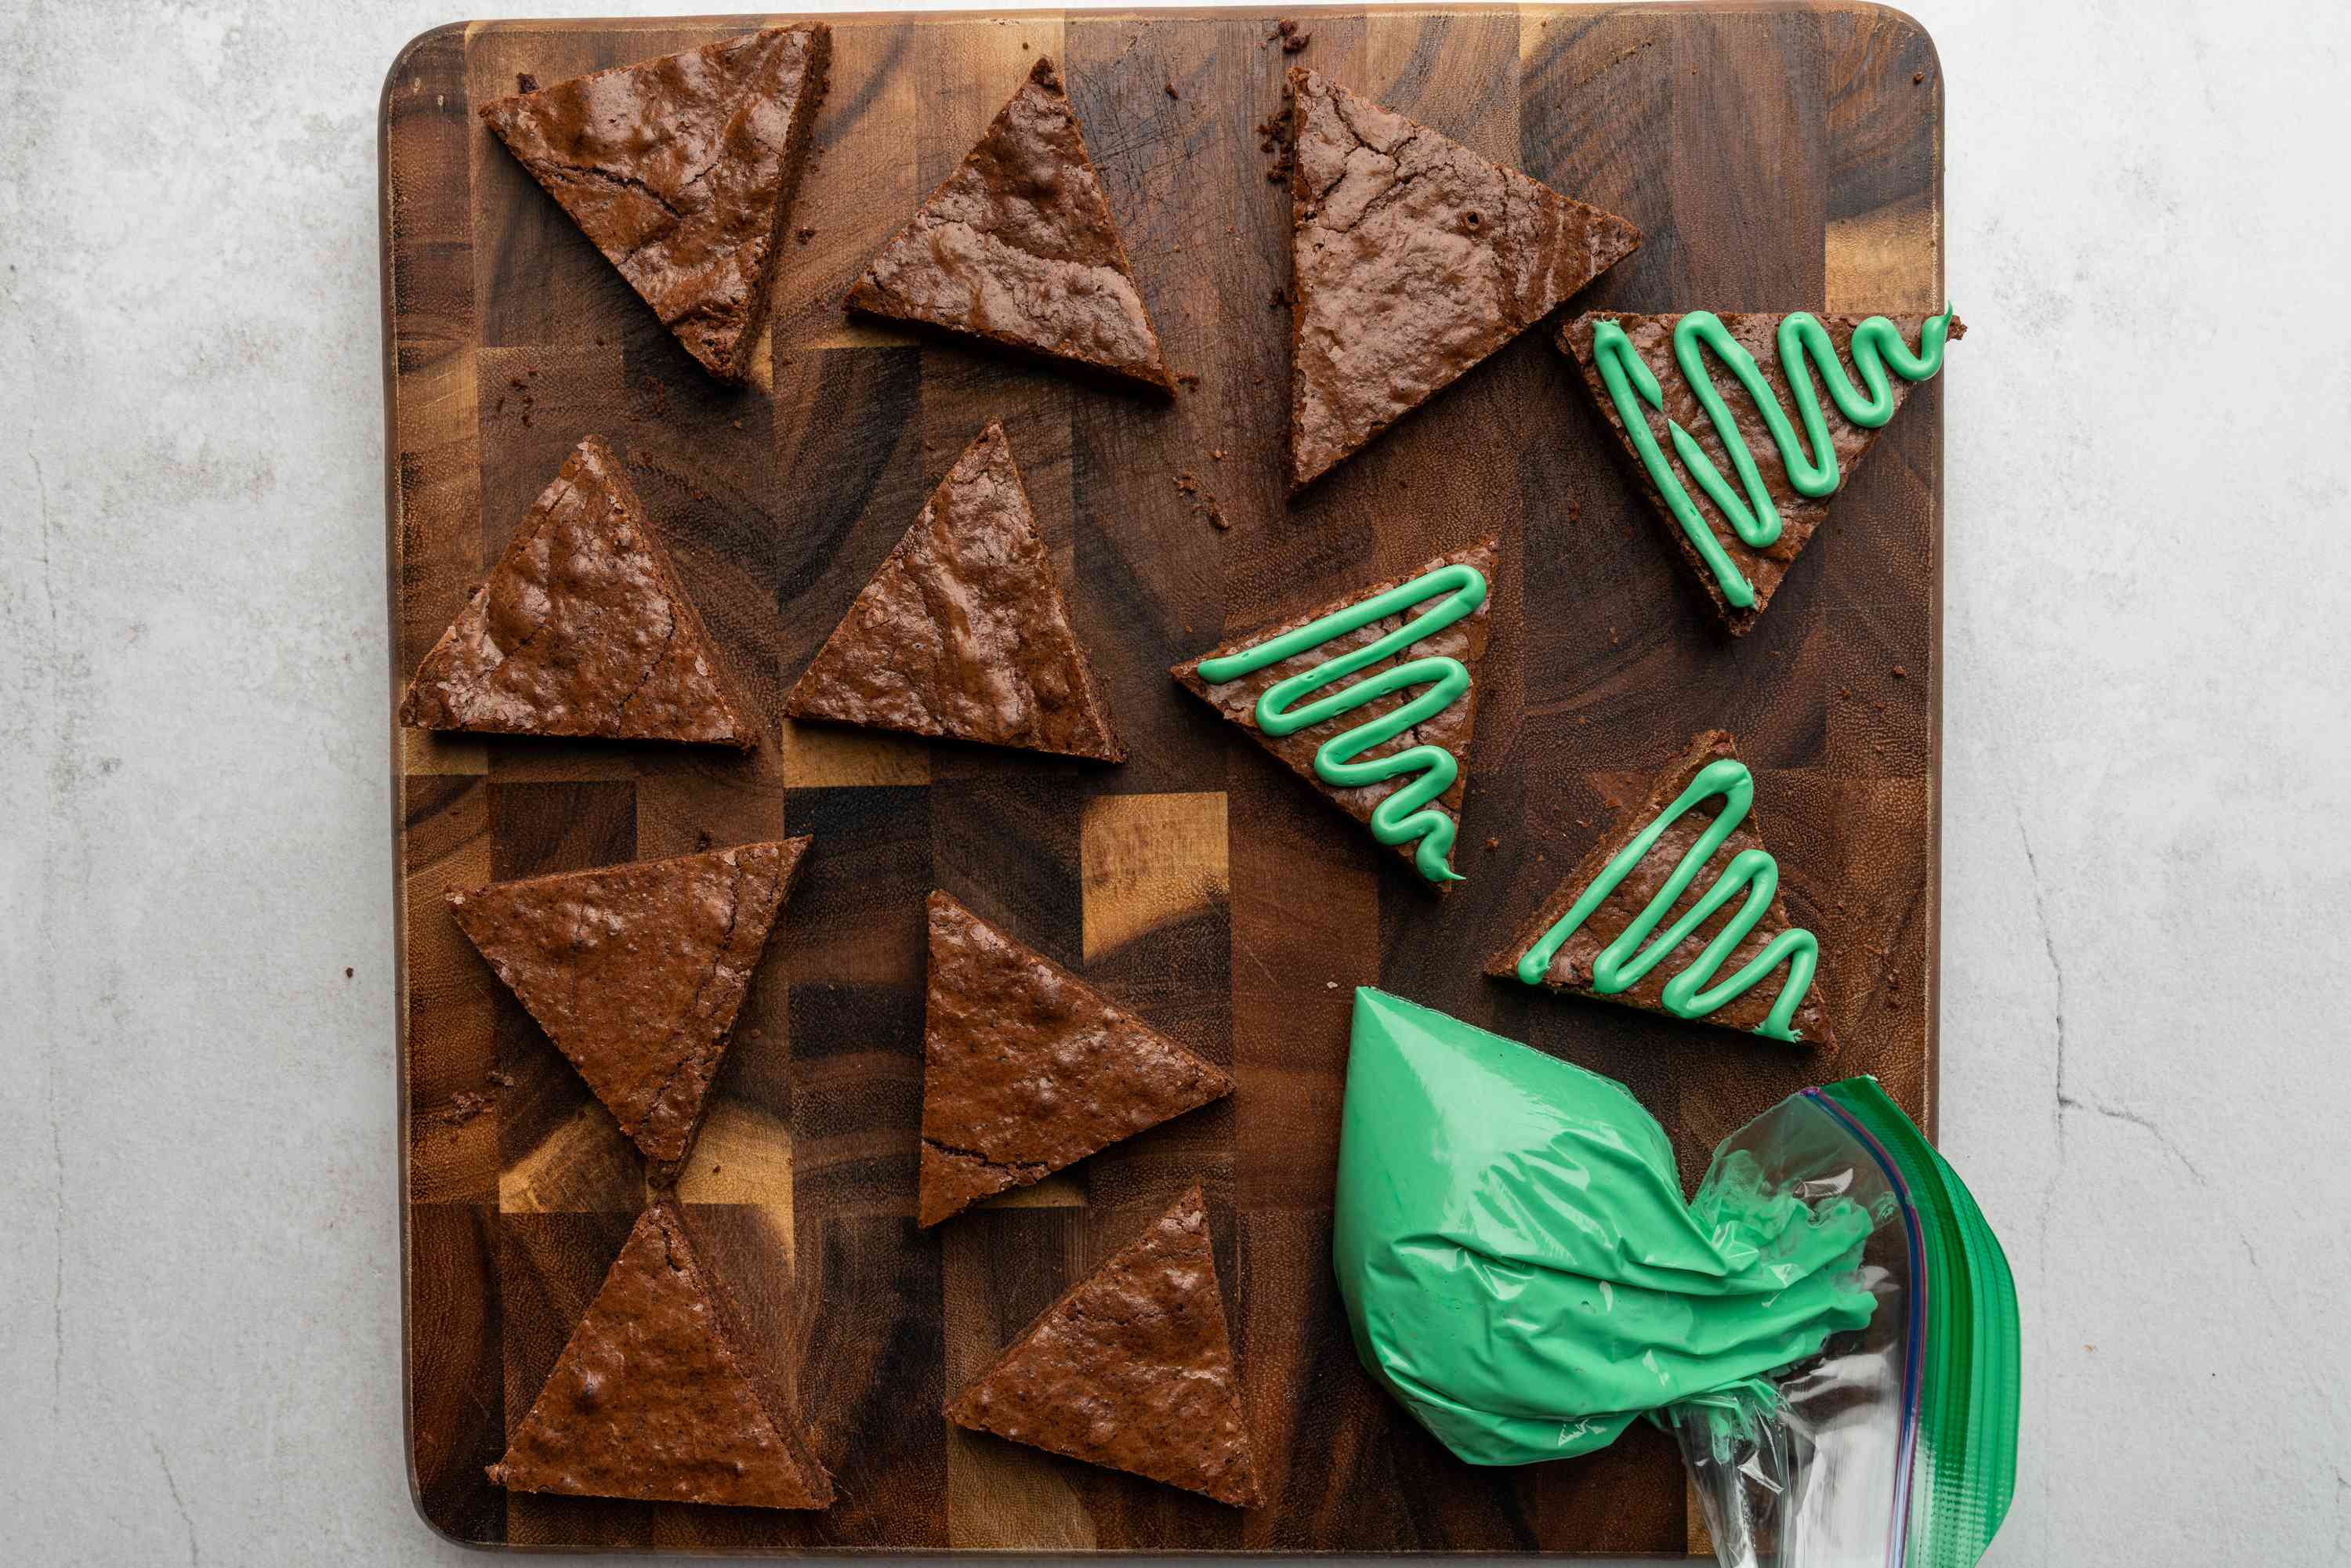 green icing on the brownies, green icing in a bag